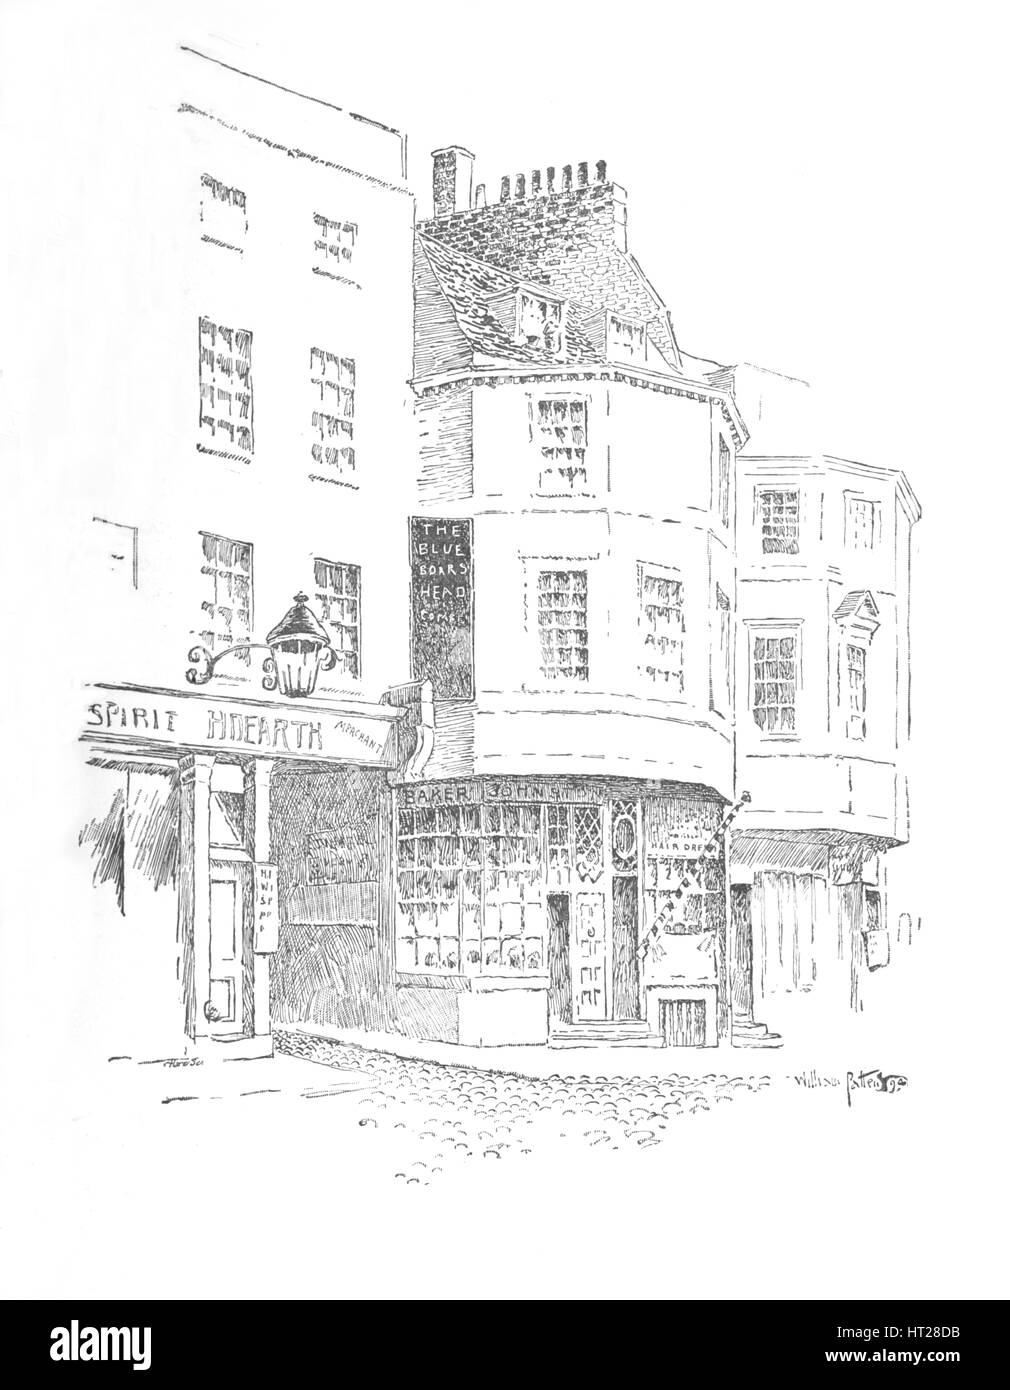 'The Boar's Head Inn, King Street', c1897. Artist: William Patten. - Stock Image